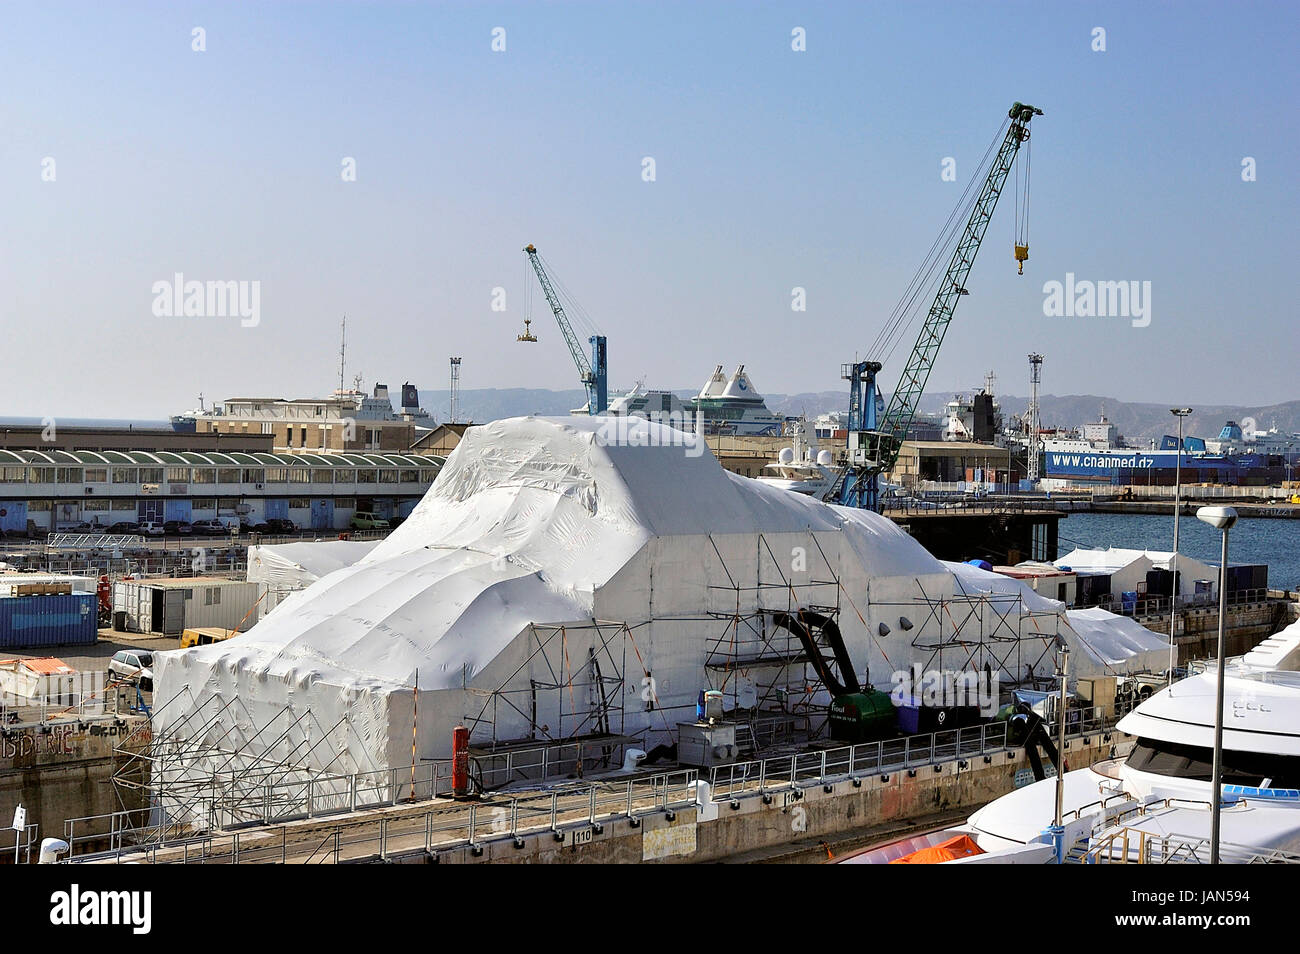 FOS-SUR-MER - FRANCE – MARCH 7, 2011: Shipyard specialized in repair and maintains it the large yachts of luxury. Stock Photo